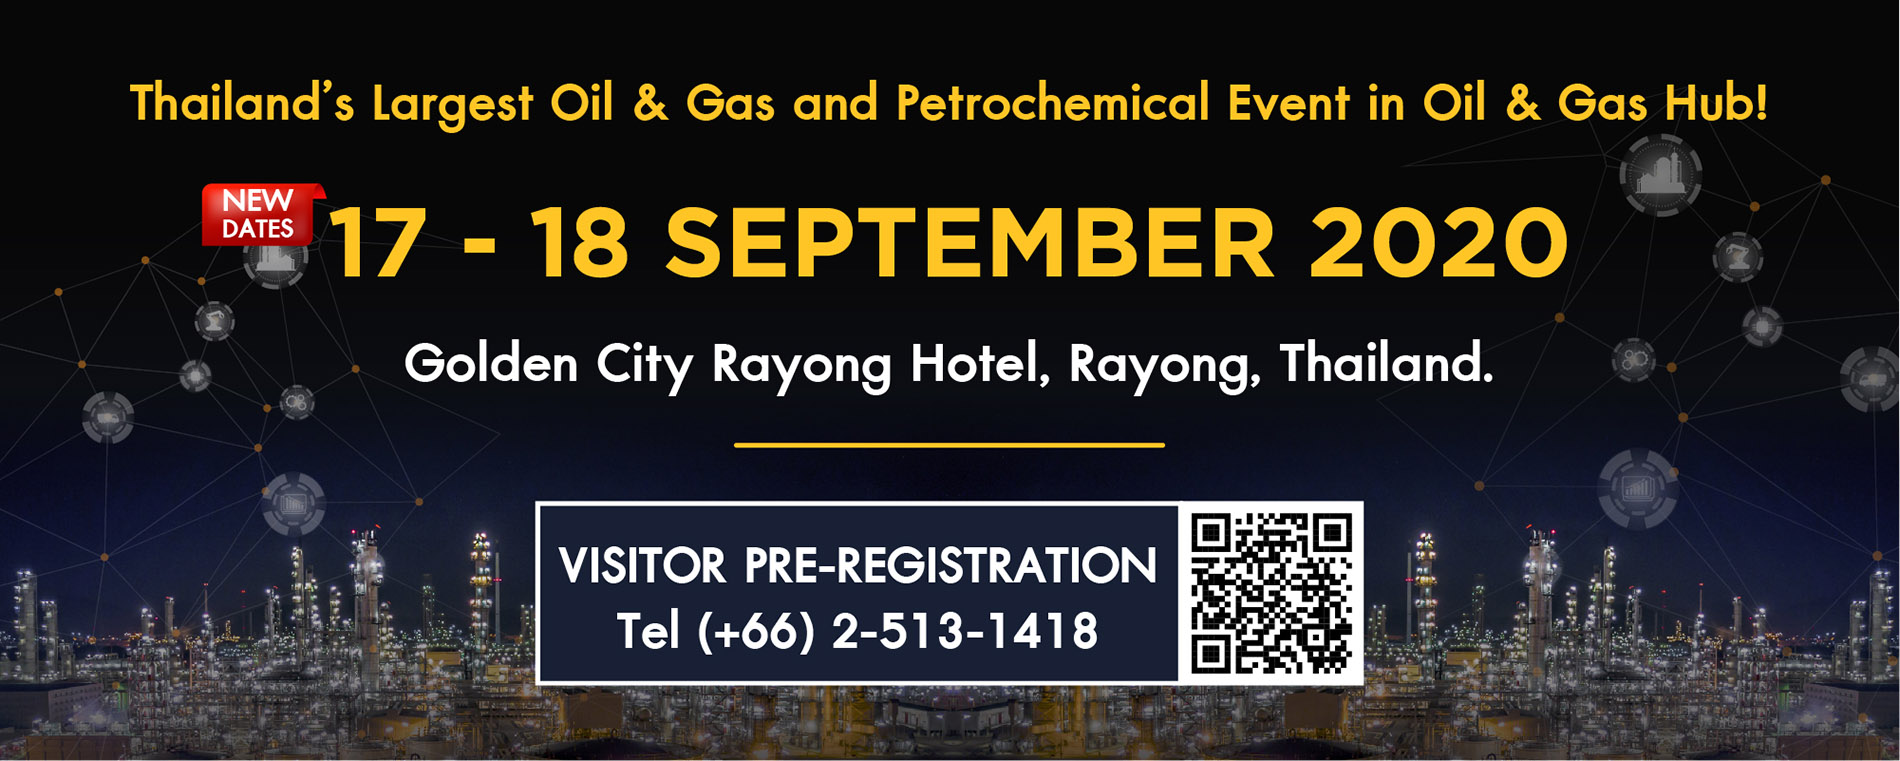 THAILAND OIL & GAS ROADSHOW 2020